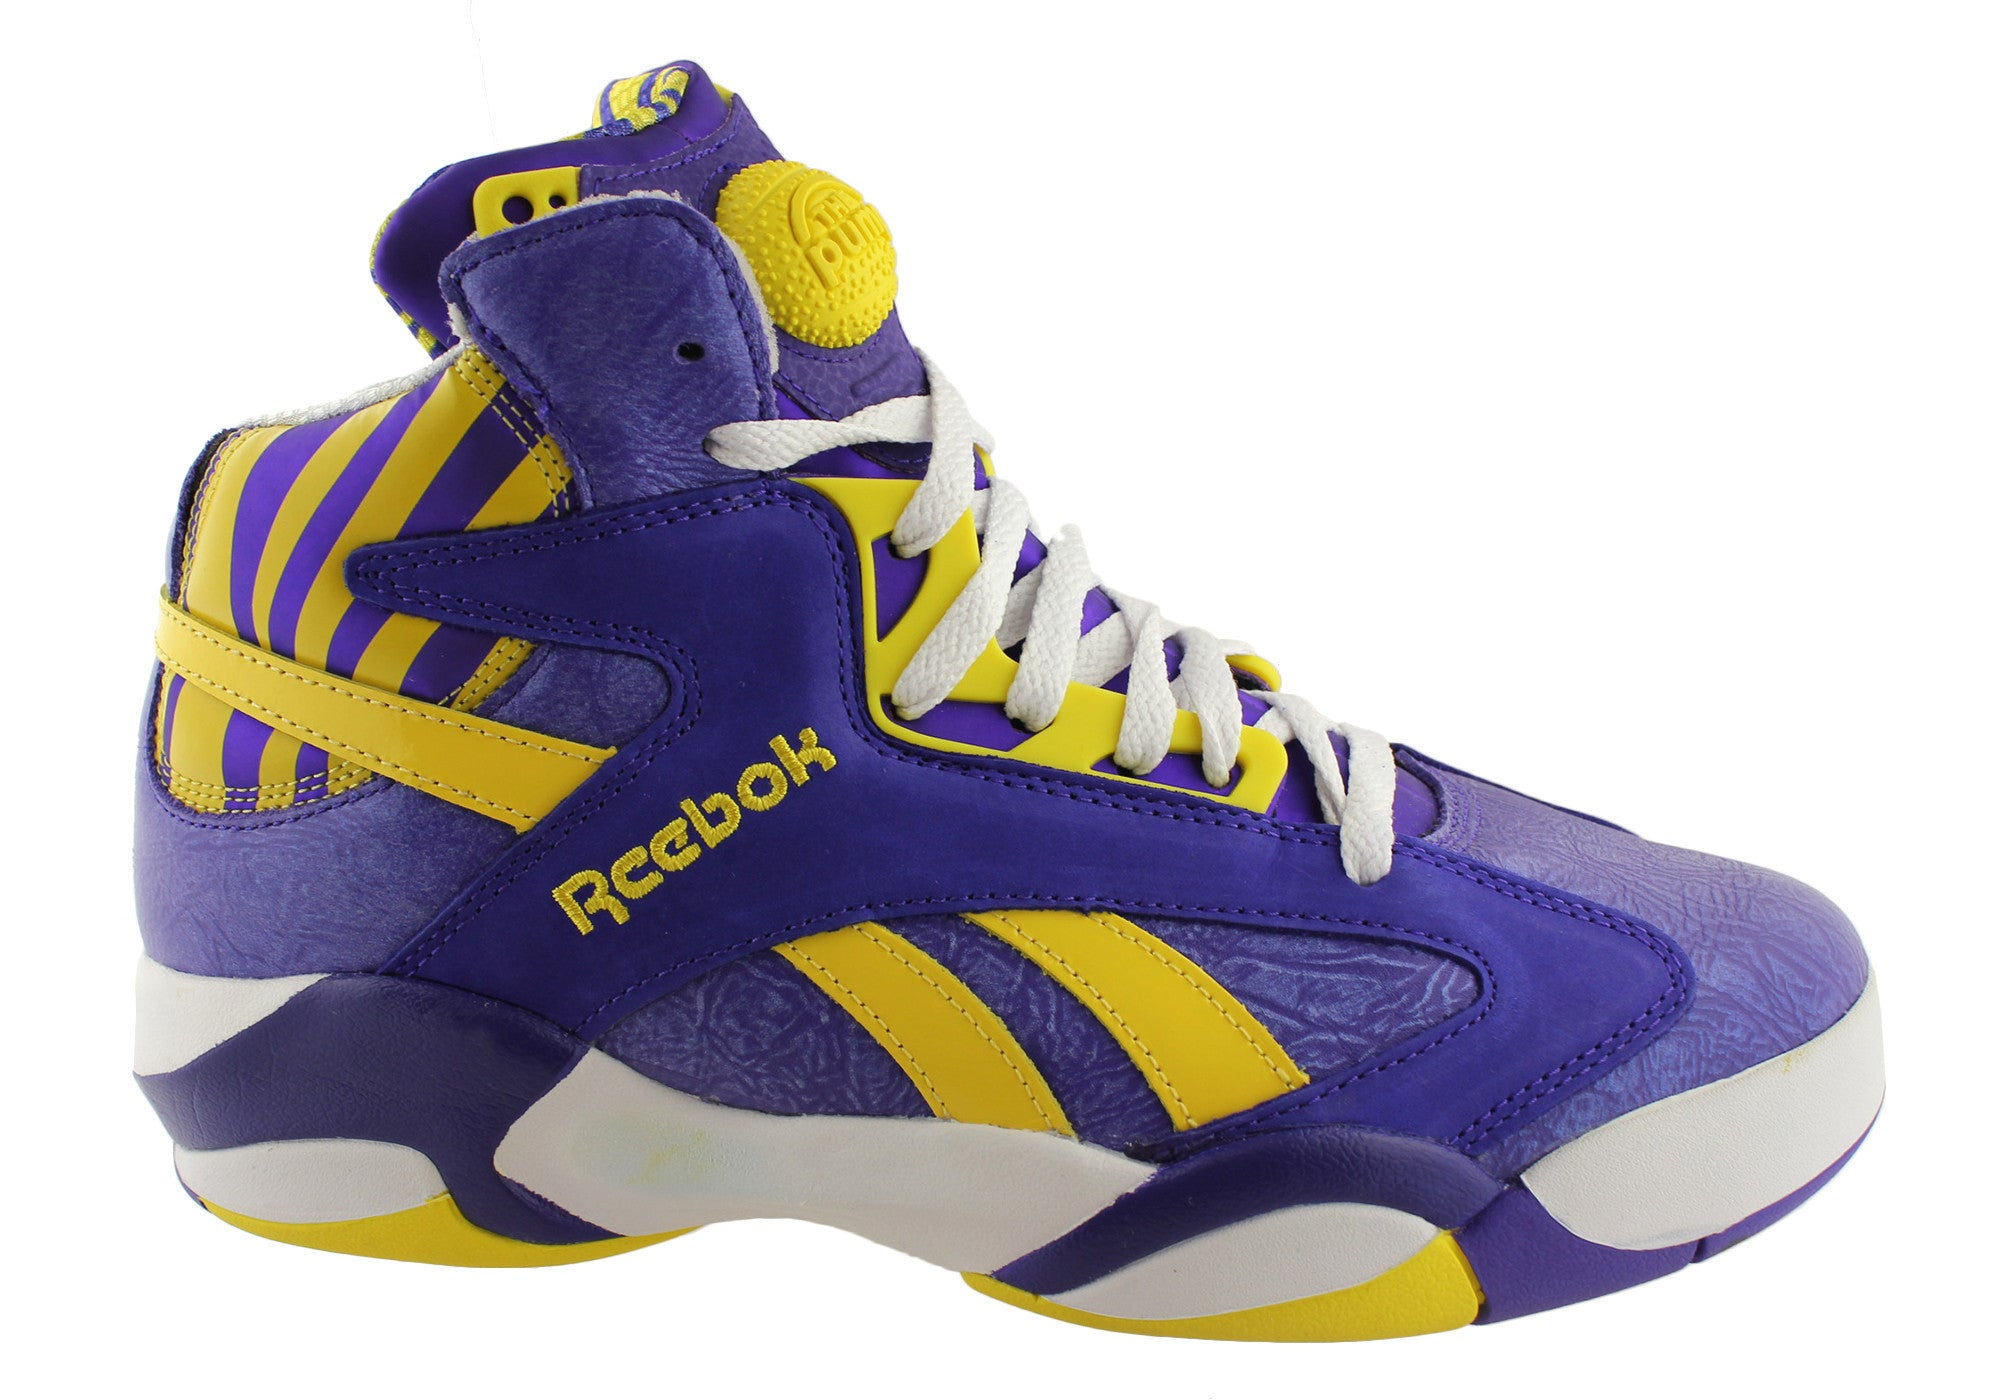 c06e40fb416 Mens Reebok Pump Shaq Attack Basketball Boots - ModeShoesAU